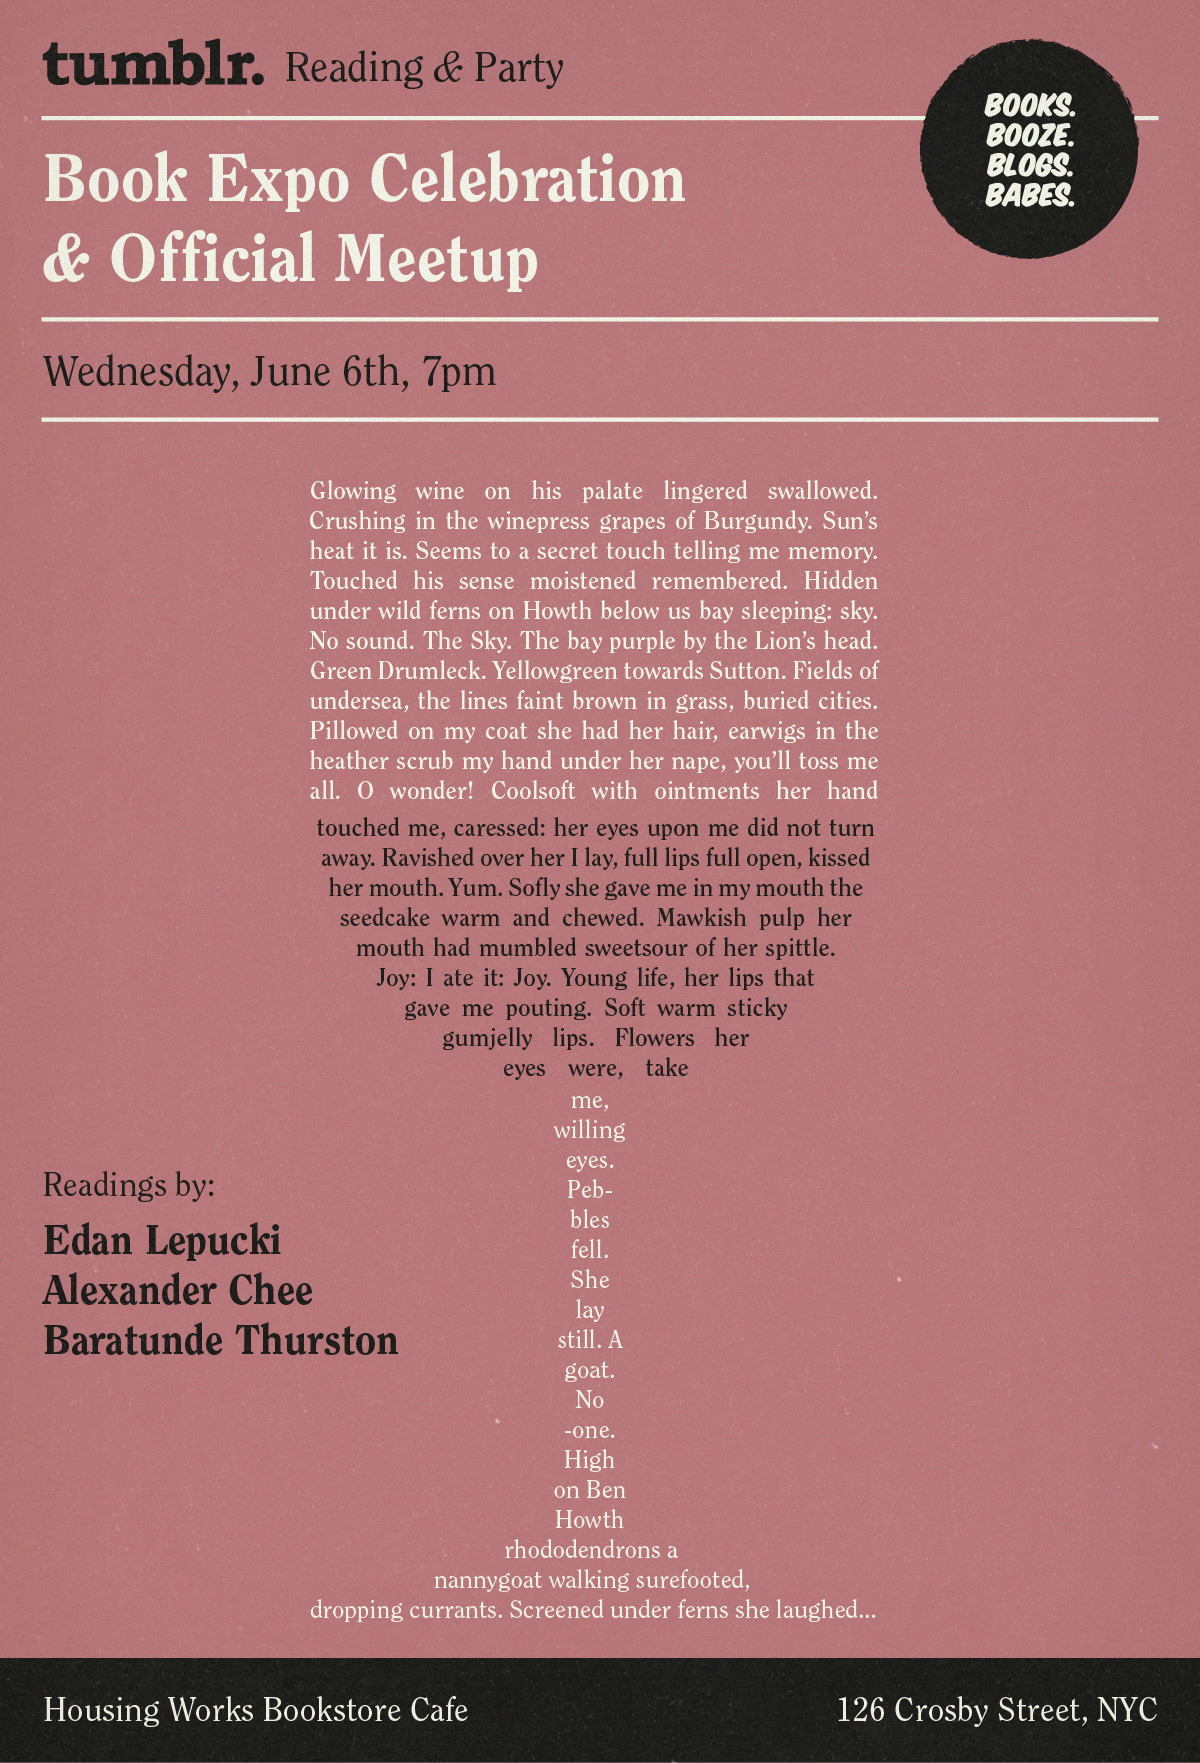 rachelfershleiser: In early June, the publishing industry takes Manhattan for Book Expo America. We're taking the opportunity to celebrate the millions of amazing readers and writers who call the Tumblr community home. Join us at Housing Works Bookstore Cafe for free drinks, fun swag, mixing, mingling, and readings by Edan Lepucki, Alexander Chee, and Baratunde Thurston.